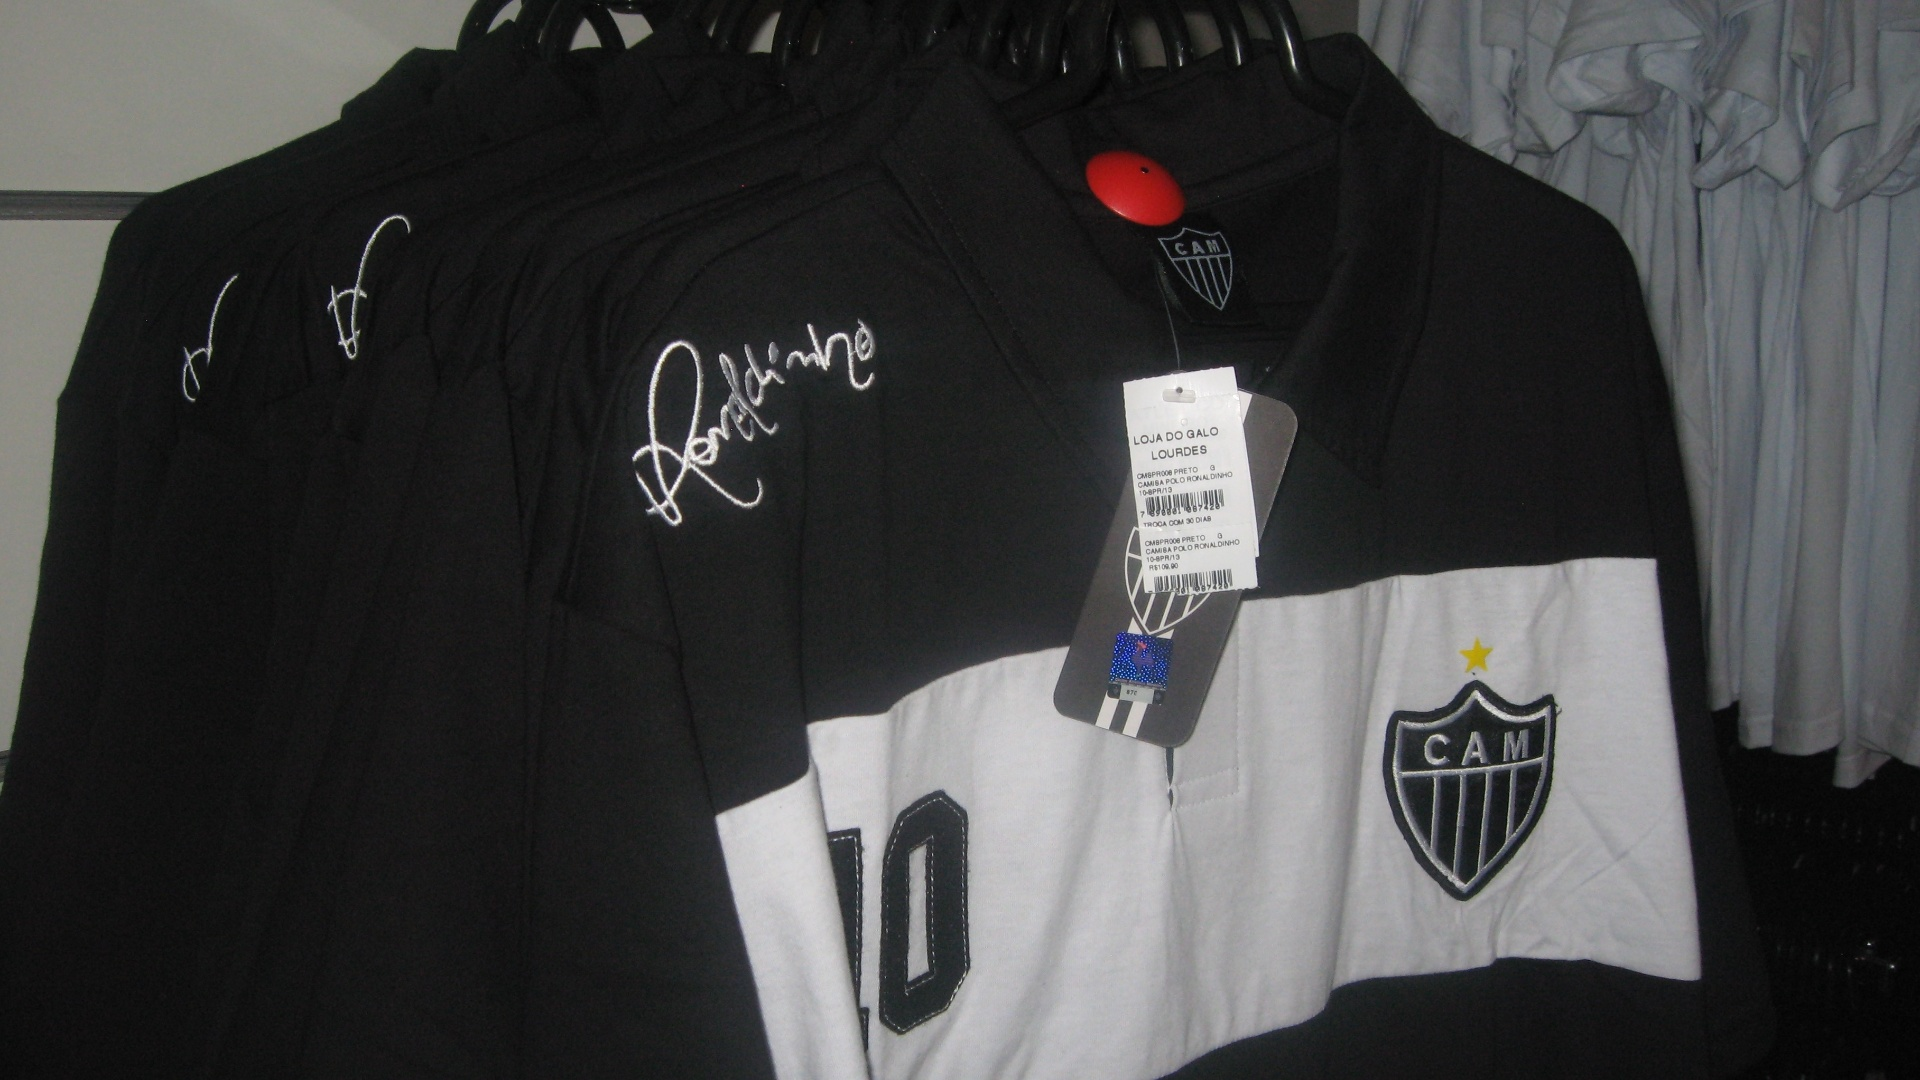 Camisas com a assinatura de Ronaldinho Gacho so colocadas  venda na Loja do Galo aps lanamento da linha prpria do jogador